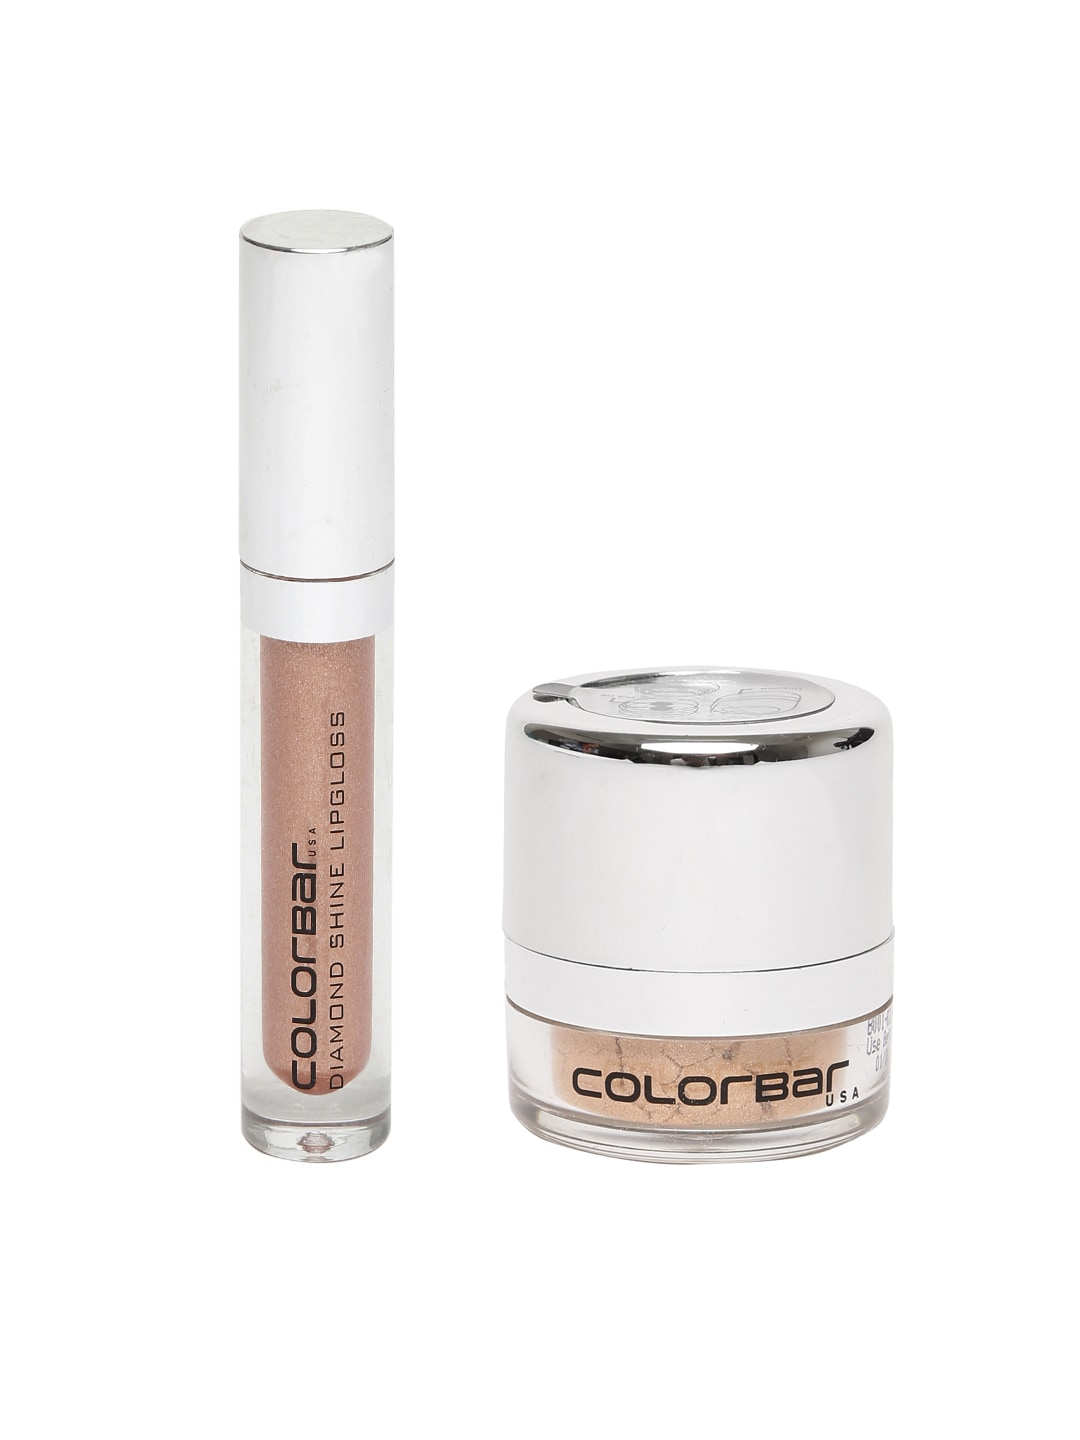 Colorbar Lip Gloss and Body Shimmer Combo image